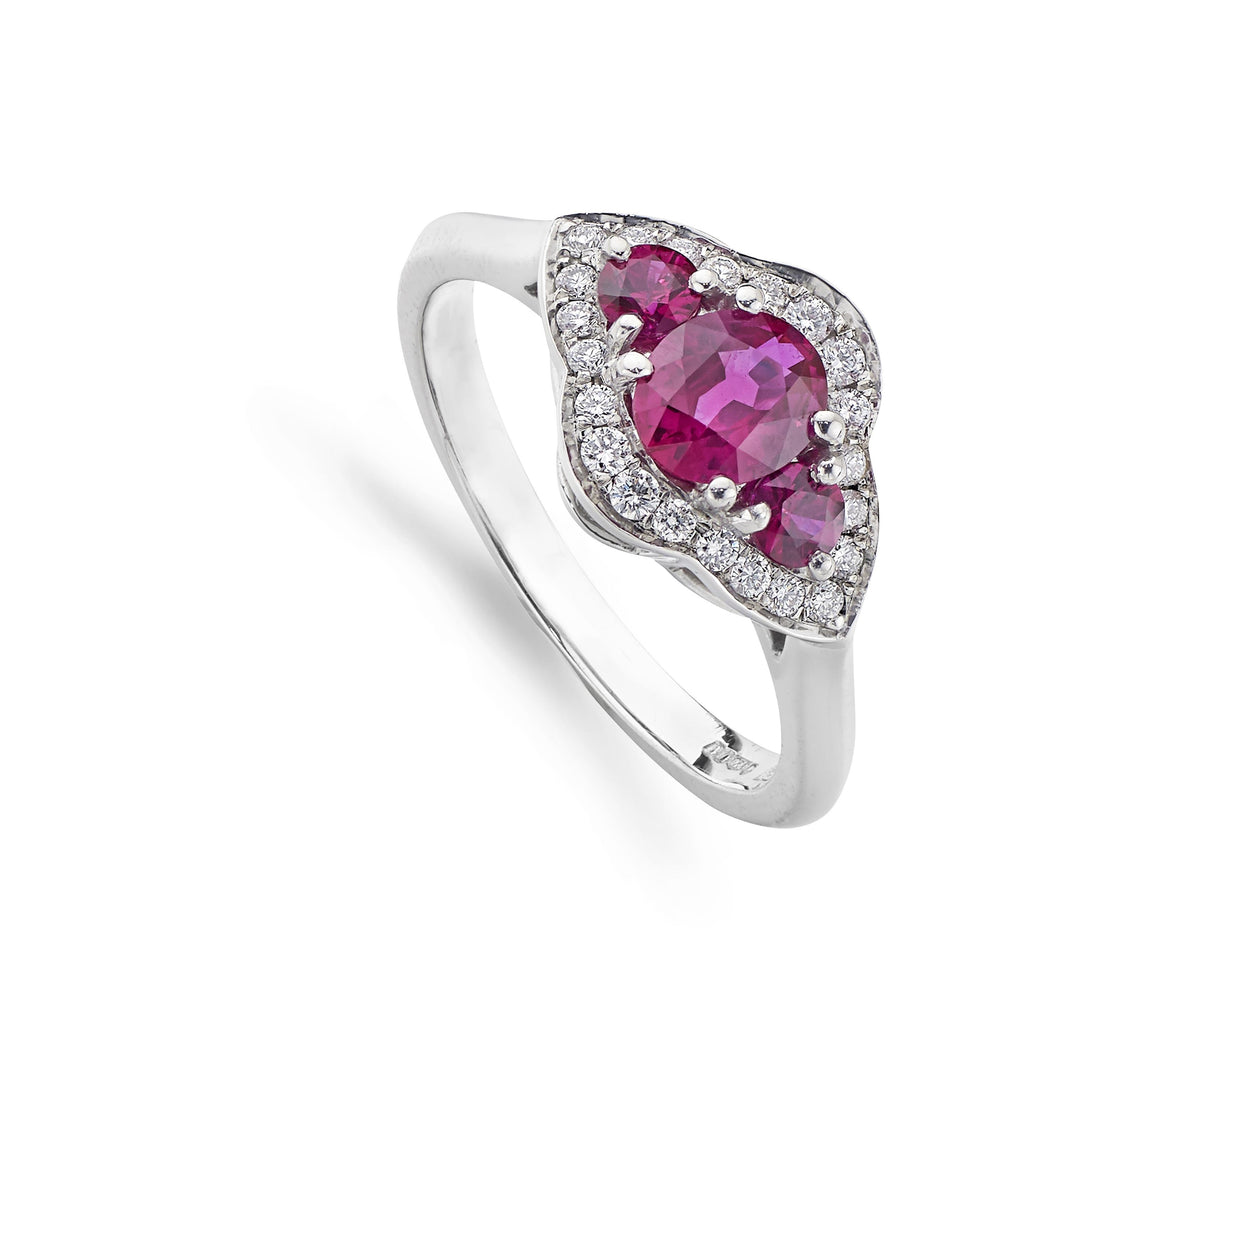 Ruby & Diamond Cluster Engagement Ring in Platinum-Hamilton & Inches